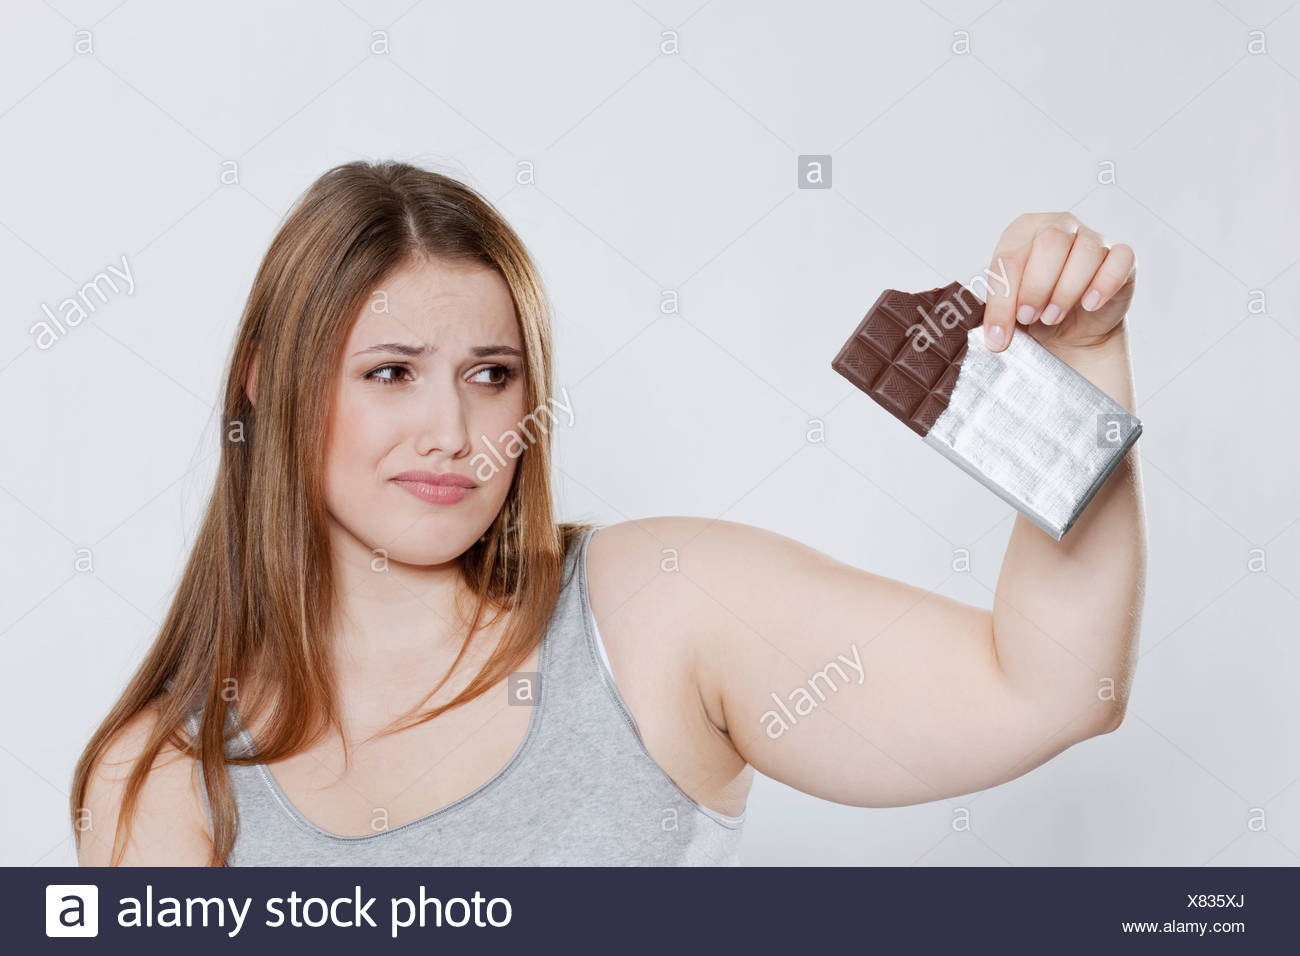 Young chubby woman with chocolate bar - Stock Image